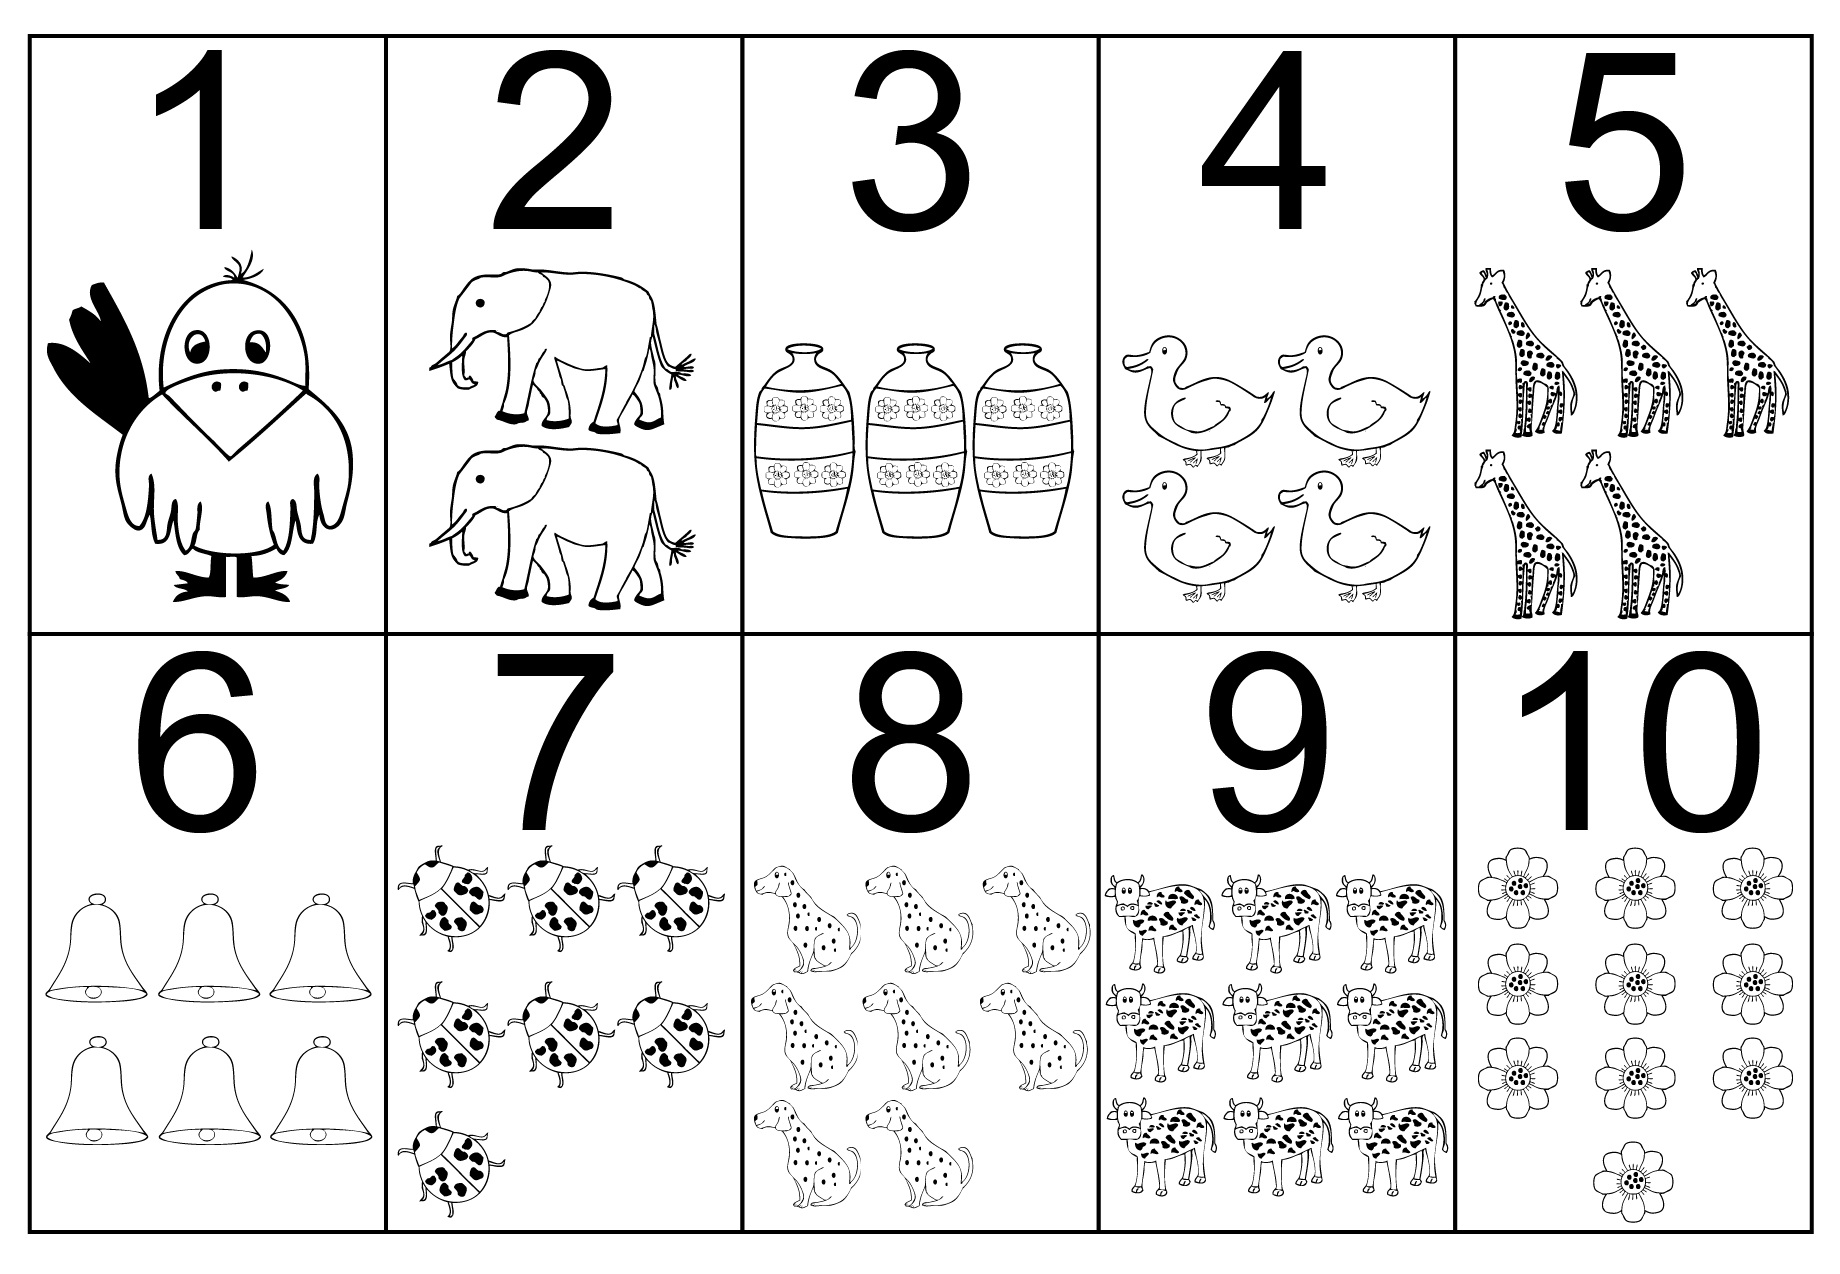 coloring number pages - Number Coloring Pages